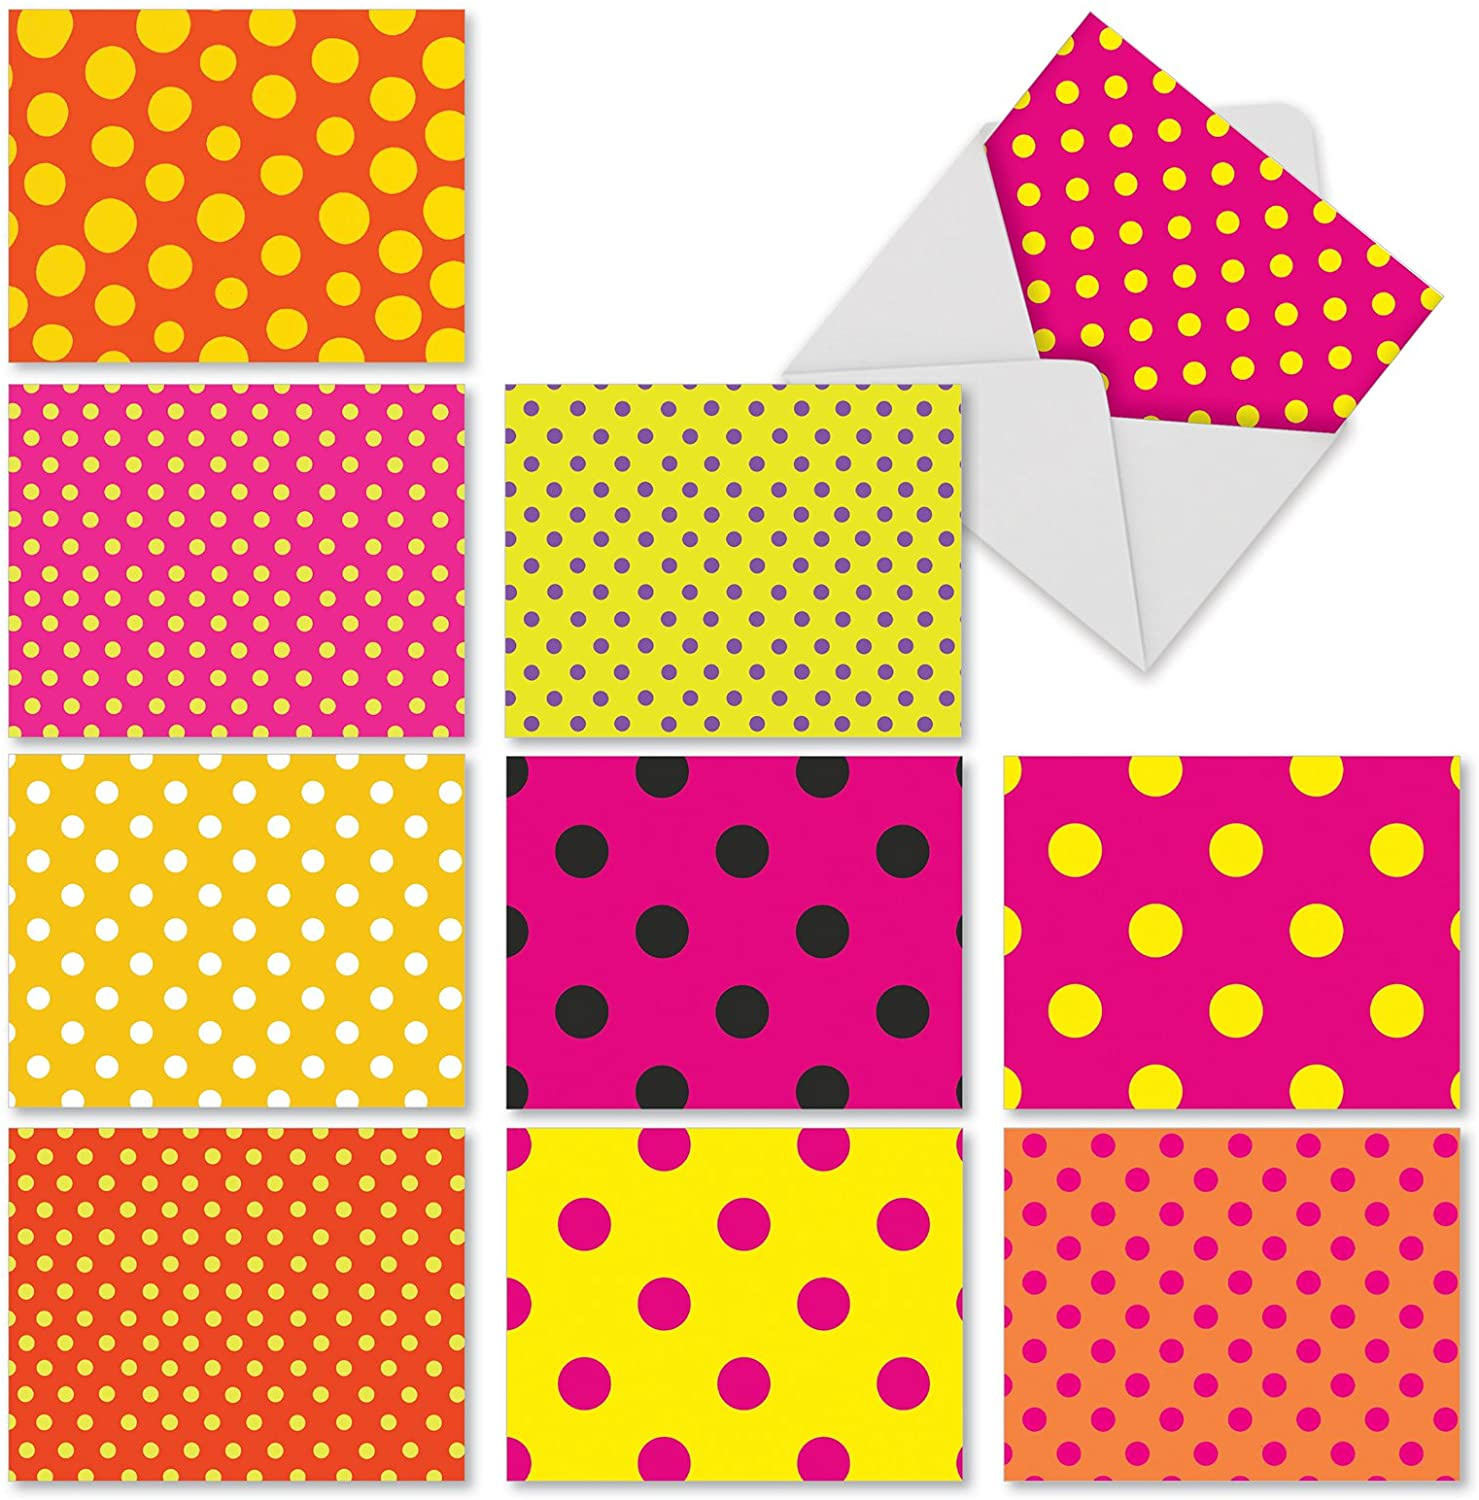 The Best Card Company - Box of 10 All Occasion Note Cards (4 x 5.12 Inch) - Blank Assorted Bulk Set - Hot Dots M3066